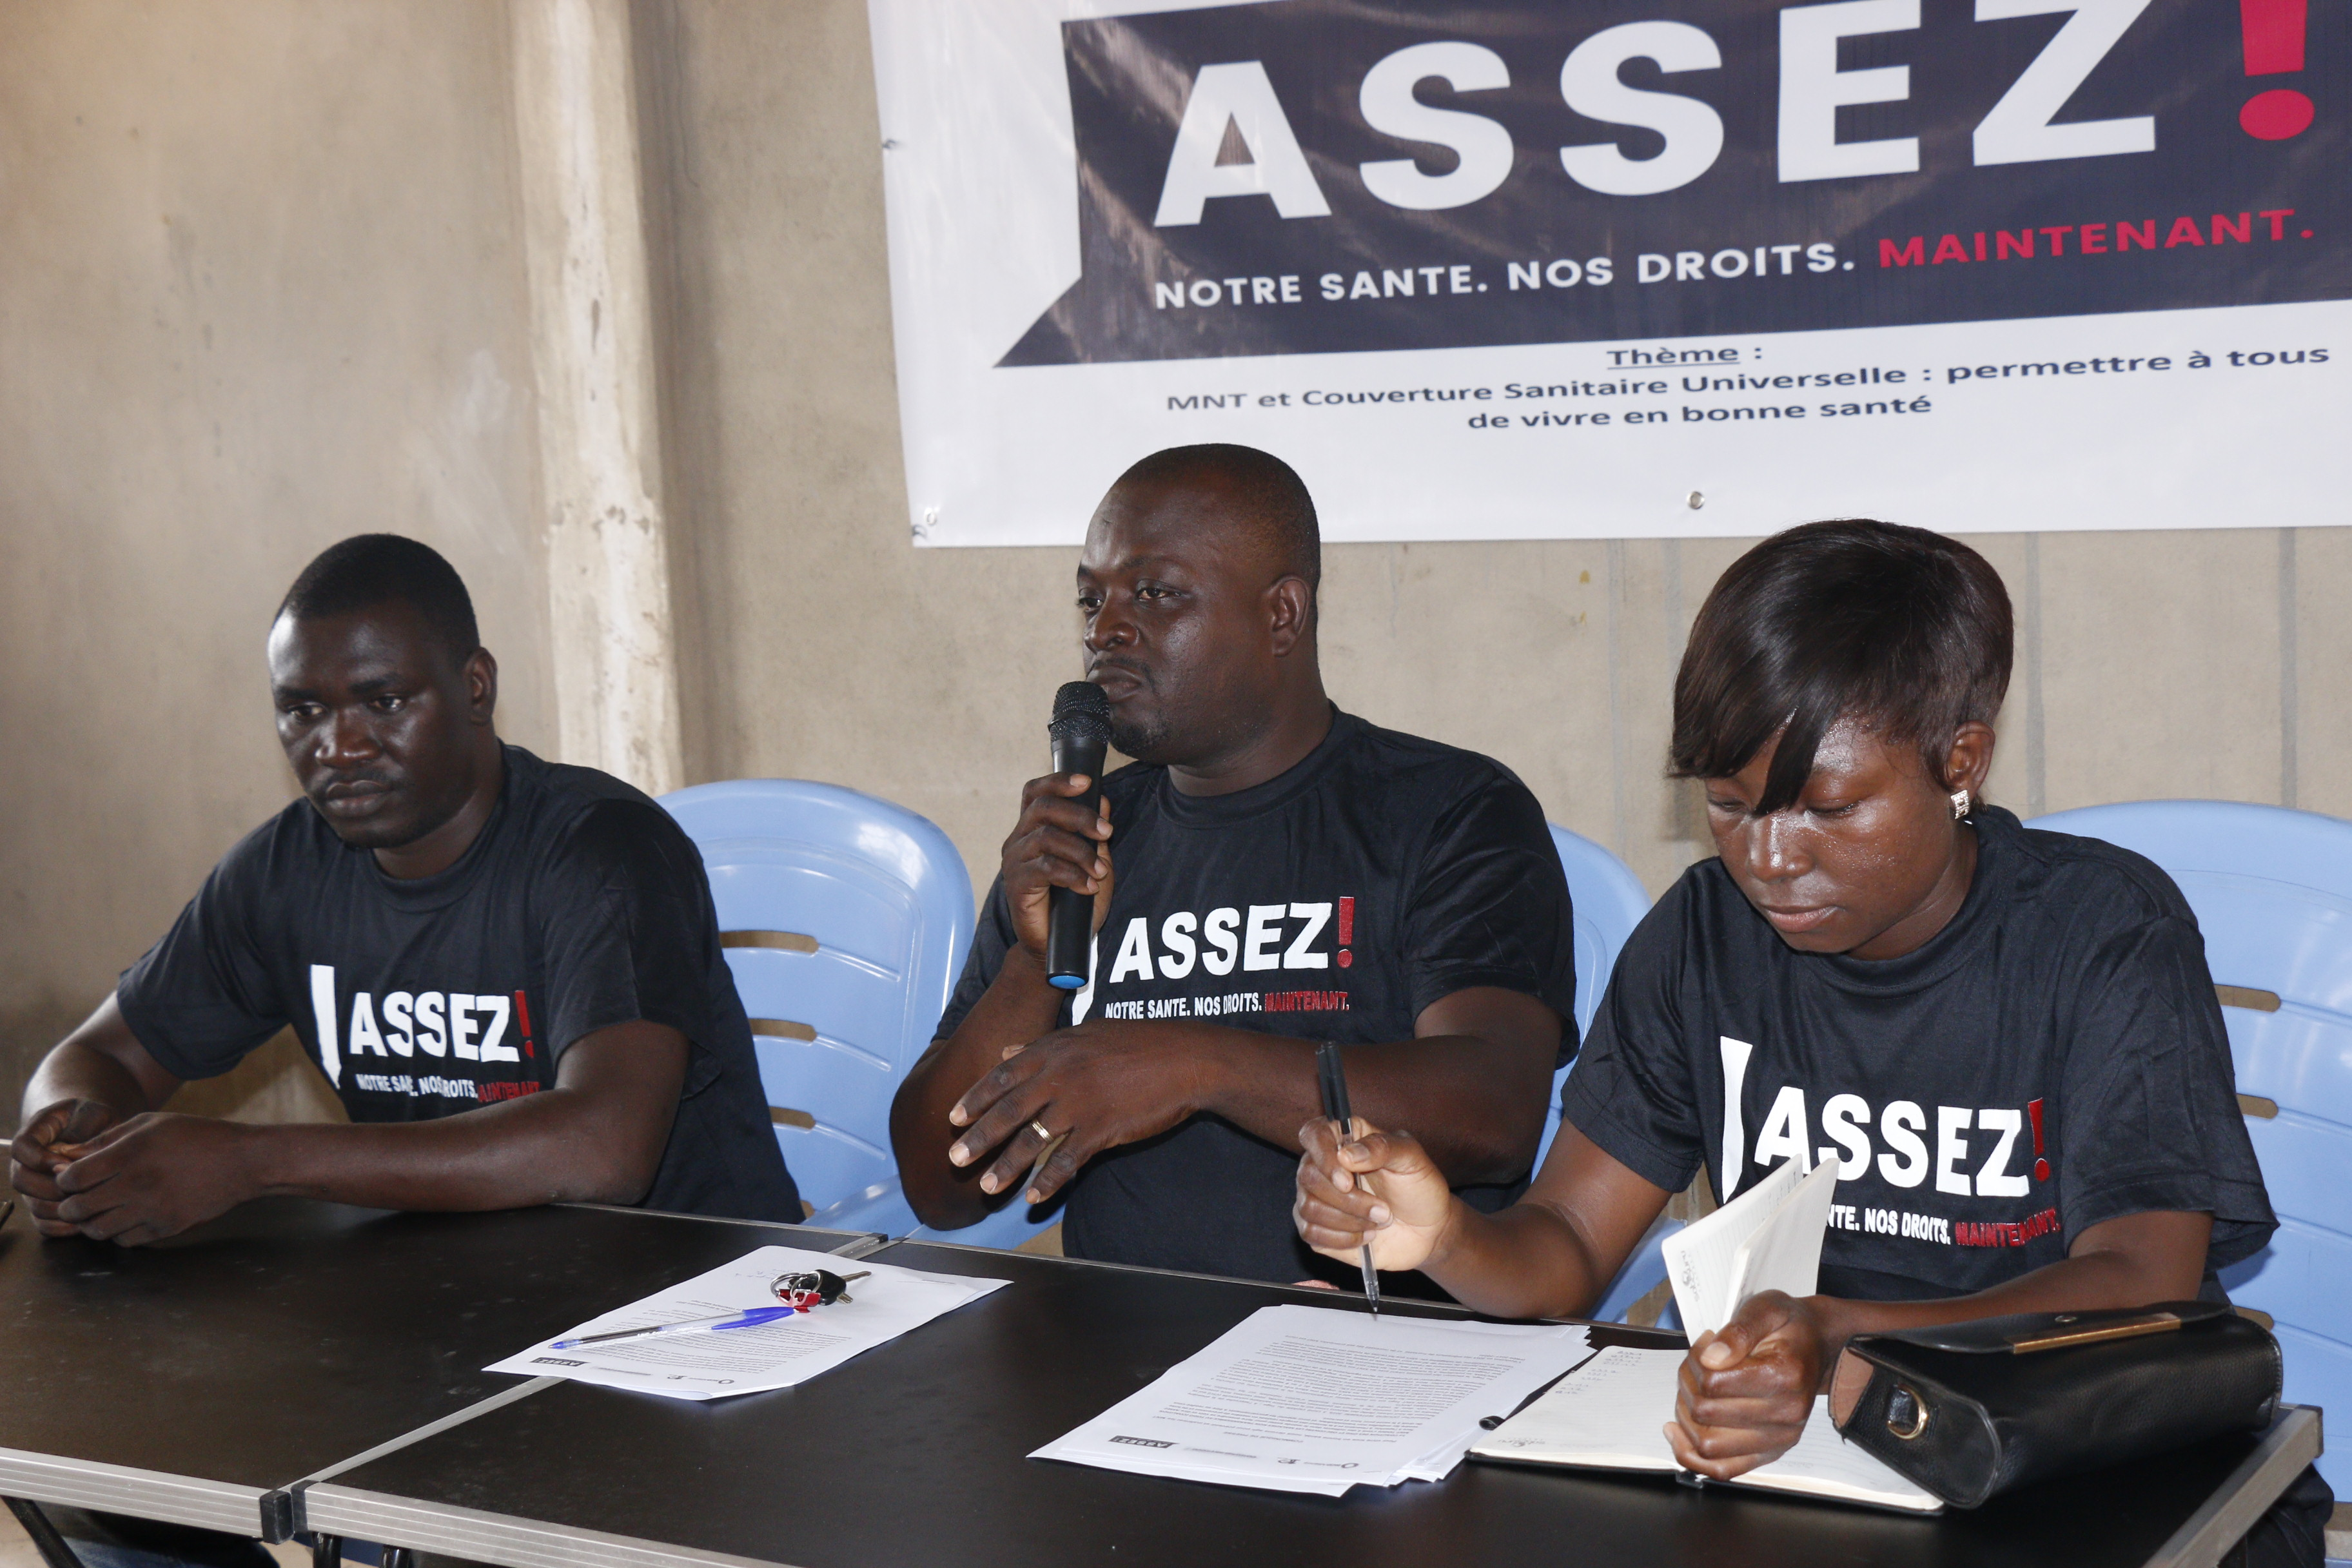 Coalition MNT-Togo engaged the Togolese media through radio and press conferences during the 2019 W4A